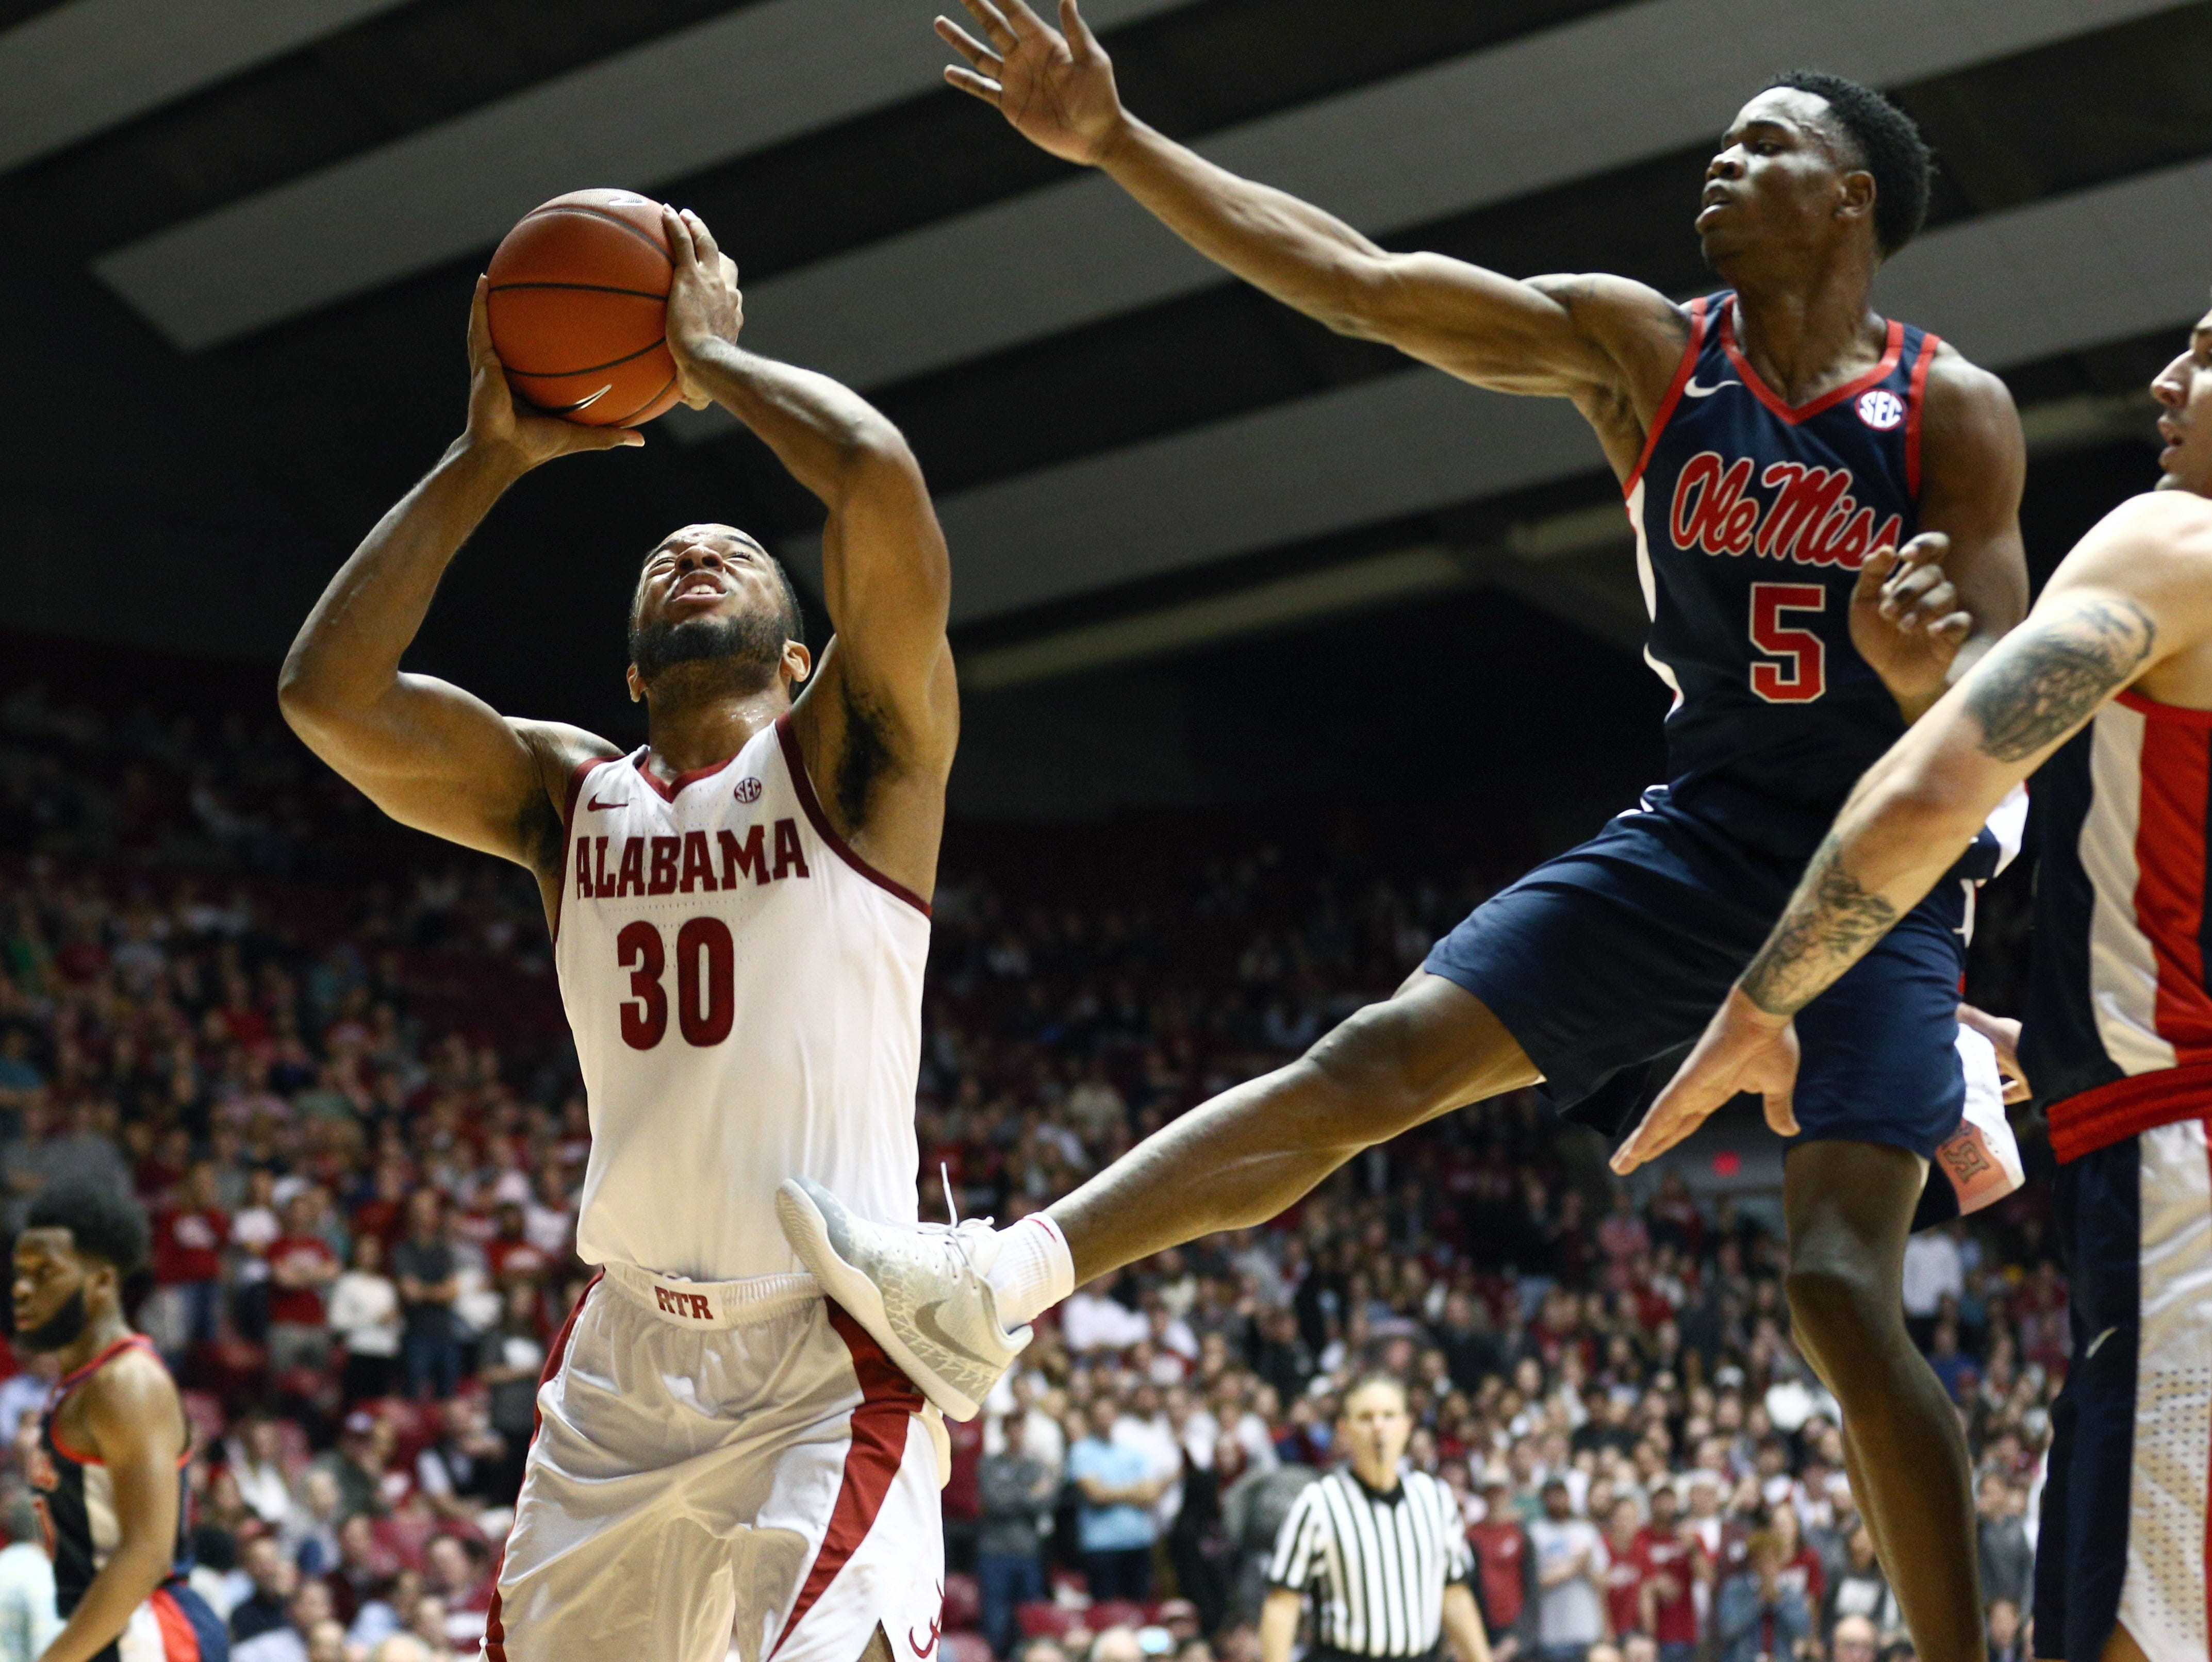 Jan 22, 2019; Tuscaloosa, AL, USA; Alabama Crimson Tide forward Galin Smith (30) drives to the basket against Mississippi Rebels guard Brian Halums (5) during the second half at Coleman Coliseum. Mandatory Credit: Marvin Gentry-USA TODAY Sports